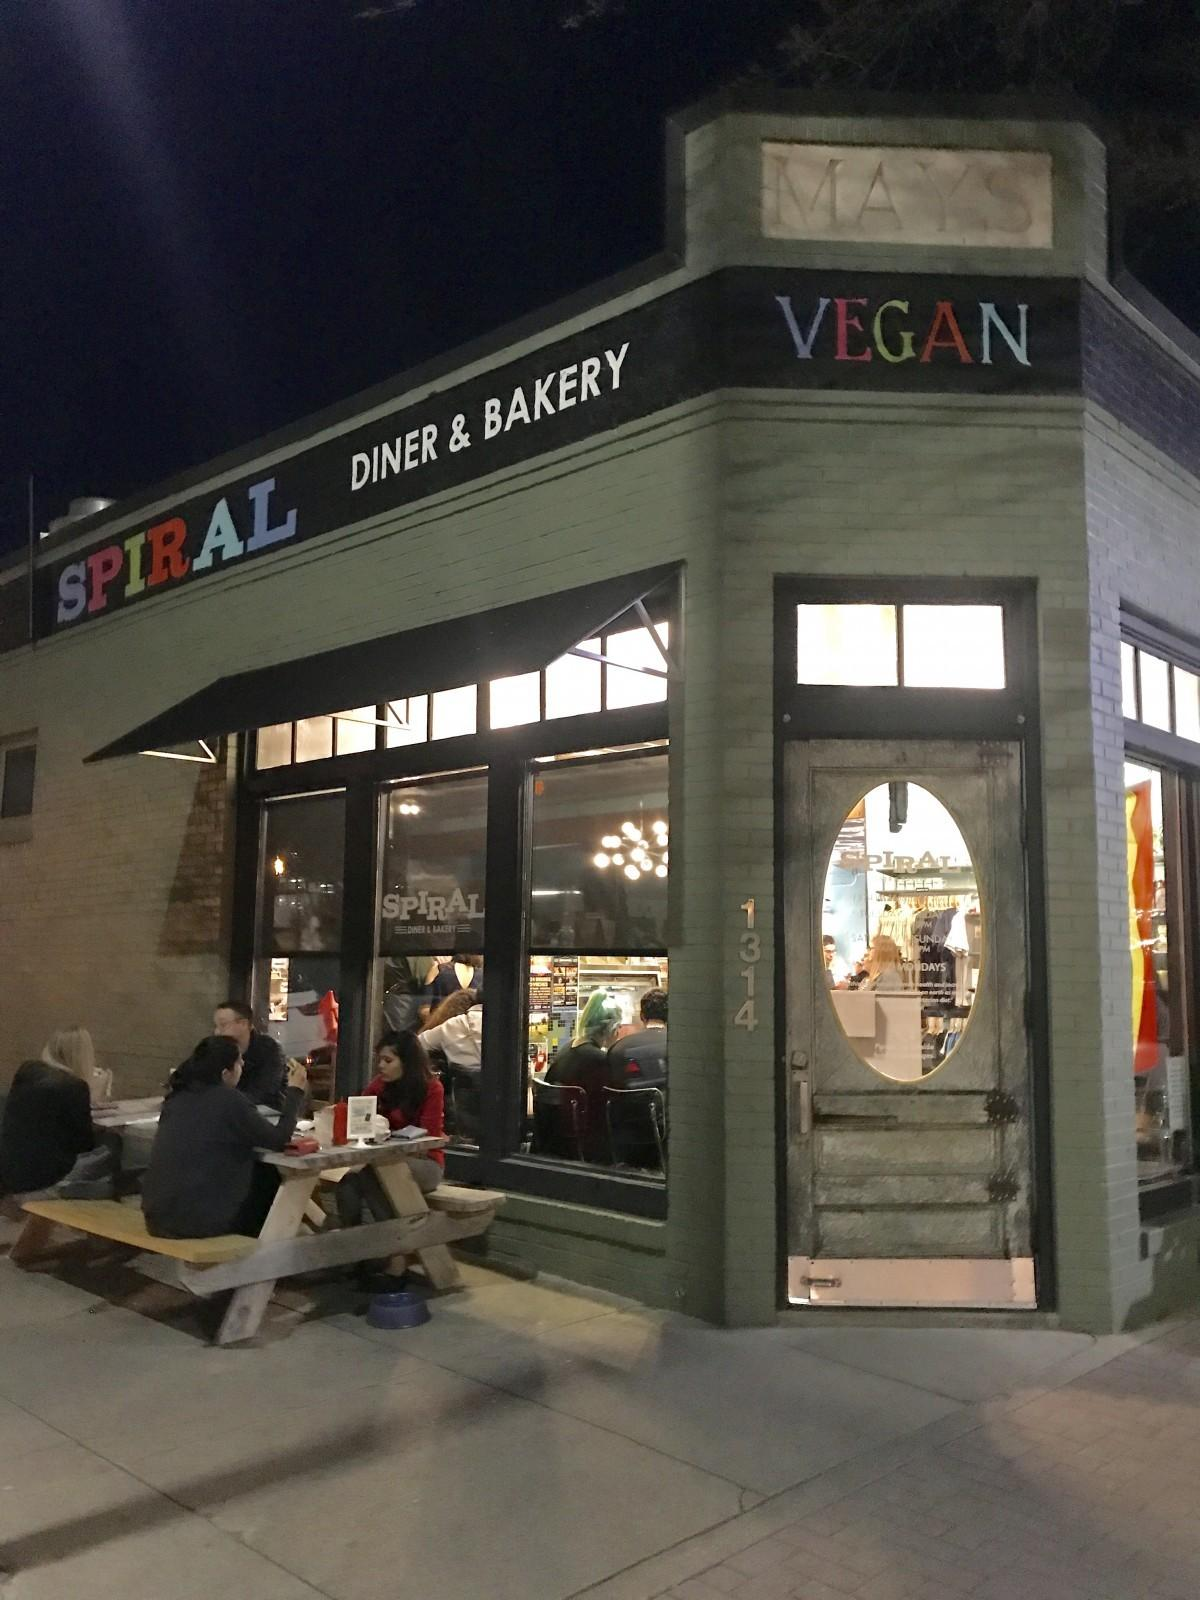 Spiral Diner serves up vegan comfort food